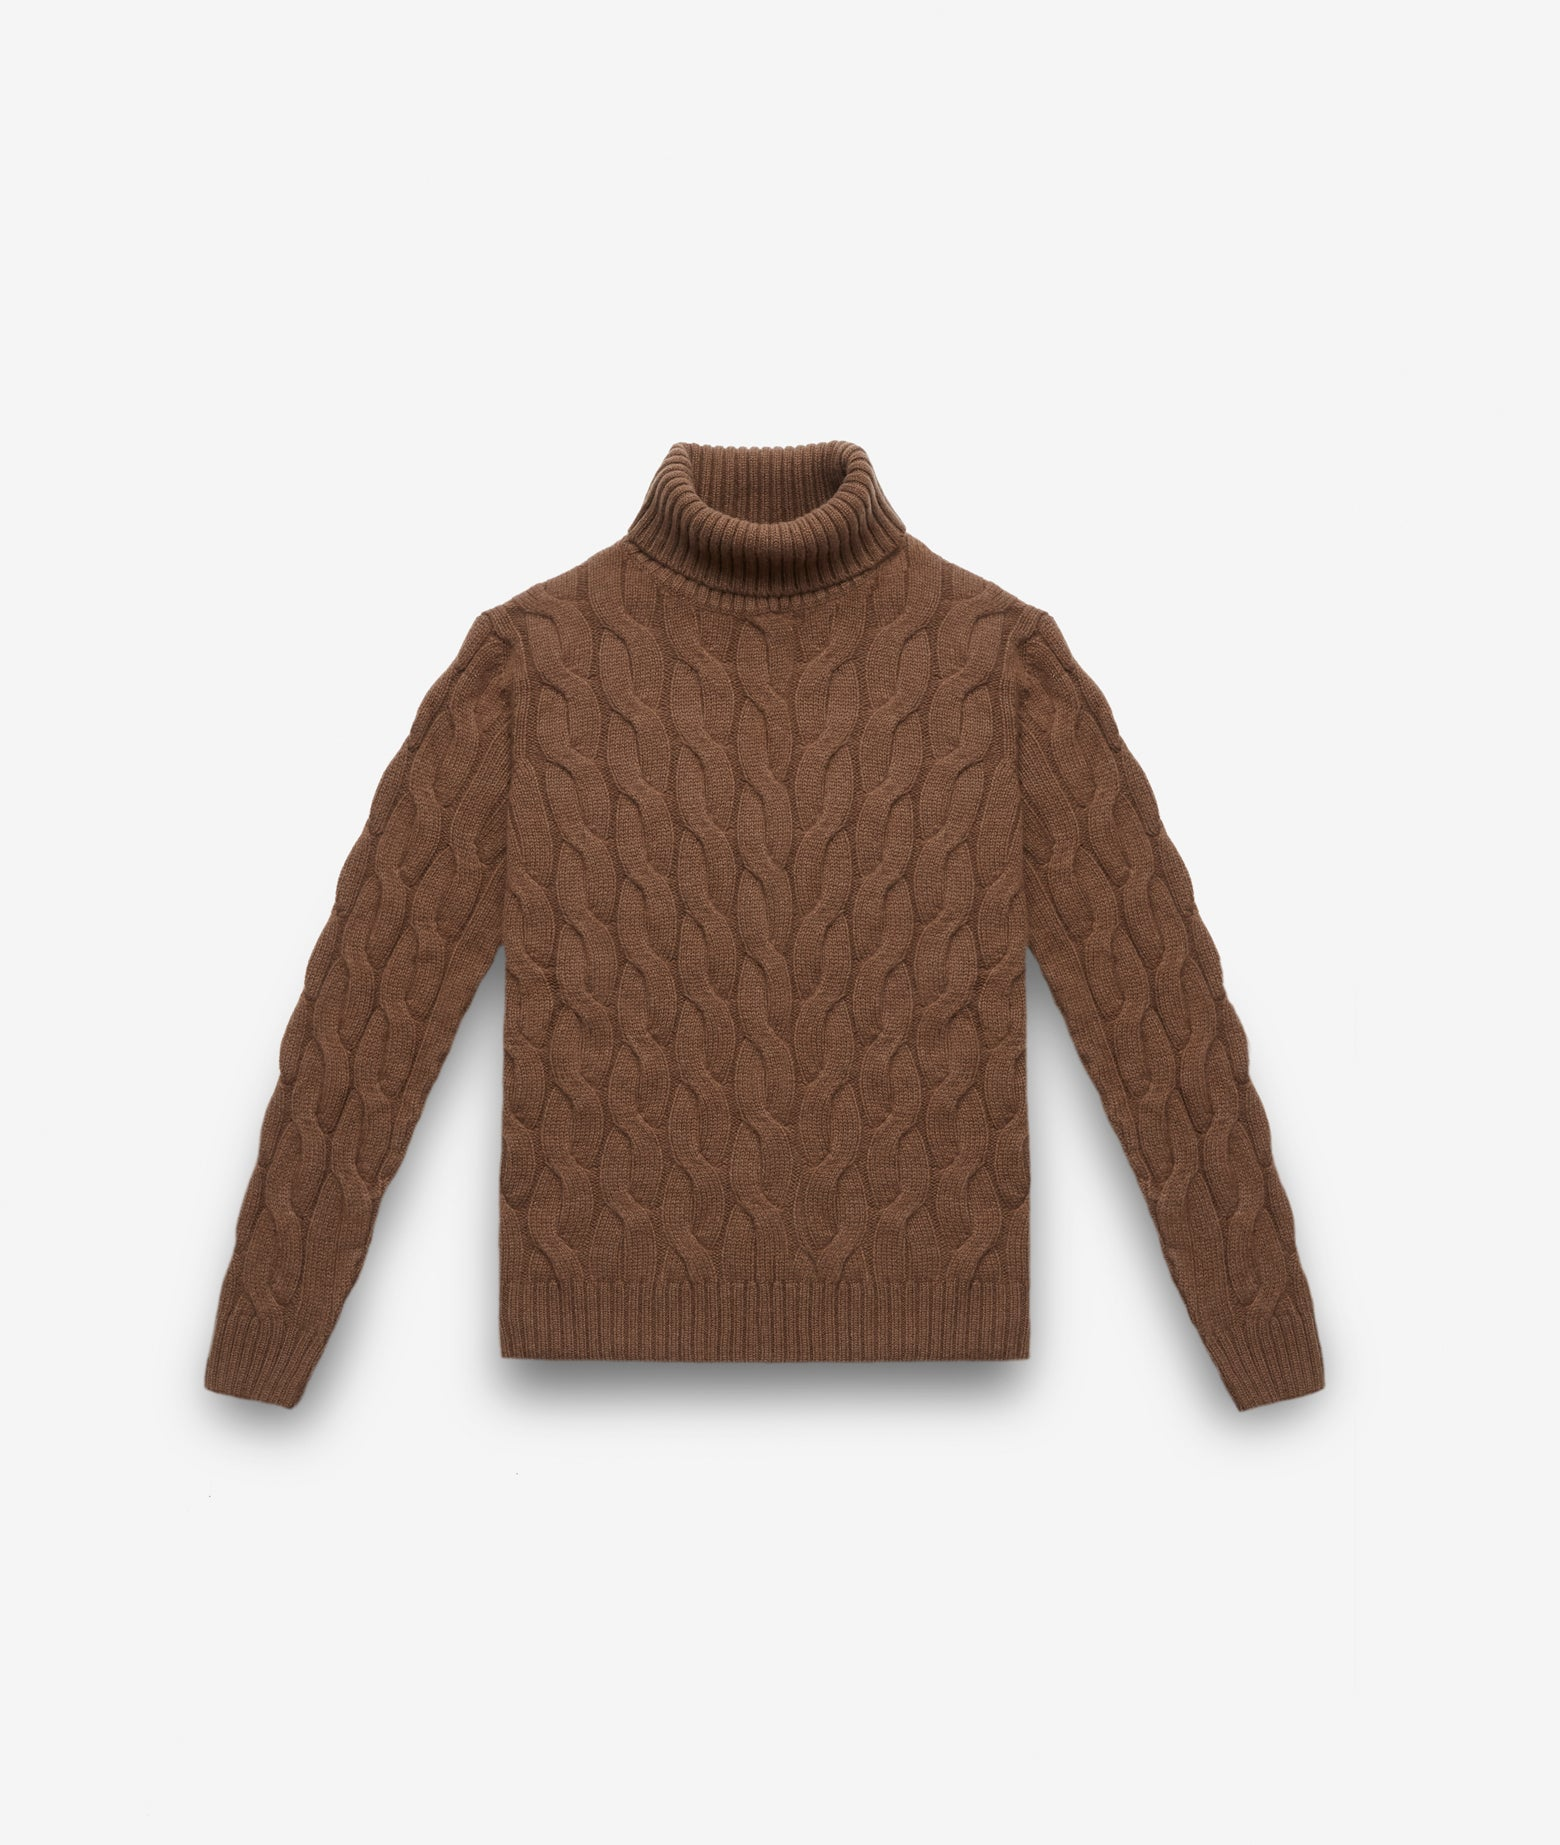 "Turtleneck Sweater ""Col du Pillon"""